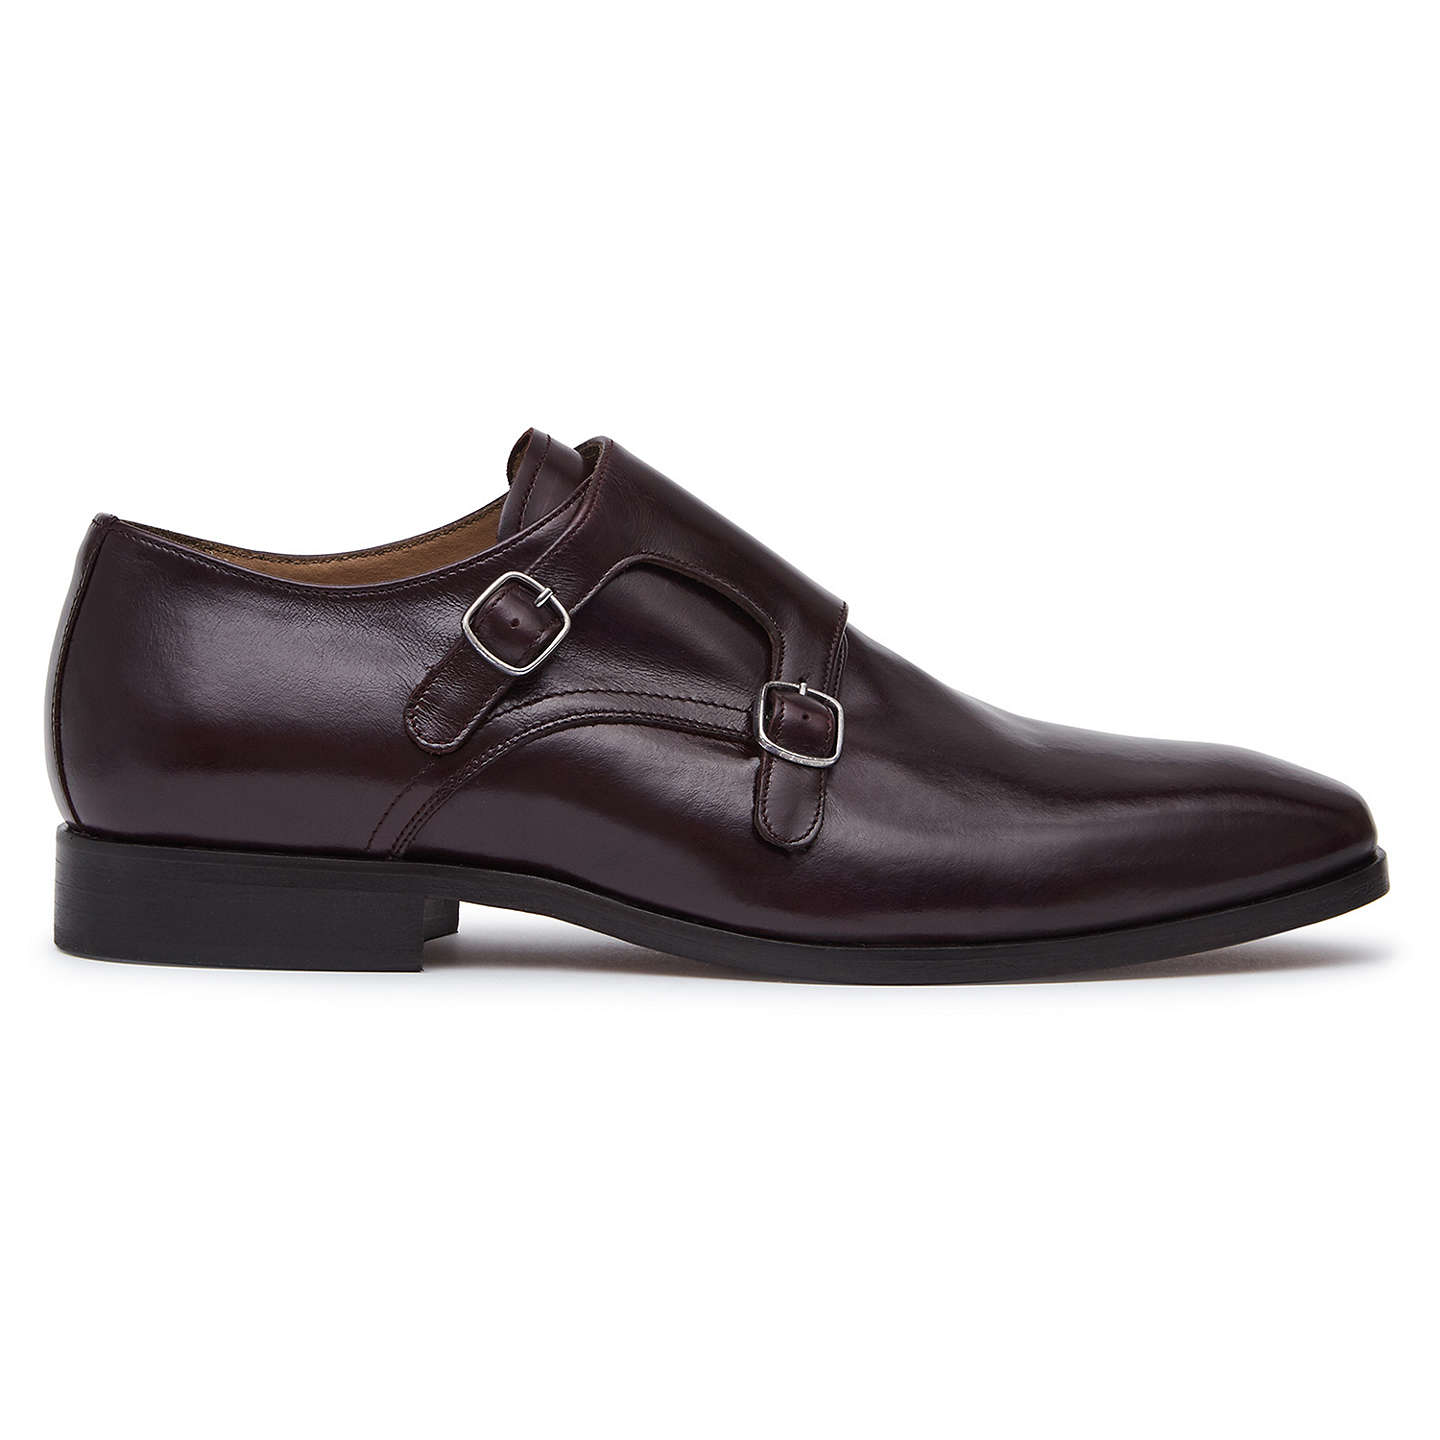 Filmore - Double Monk Strap Shoes in Black, Mens, Size 10 Reiss